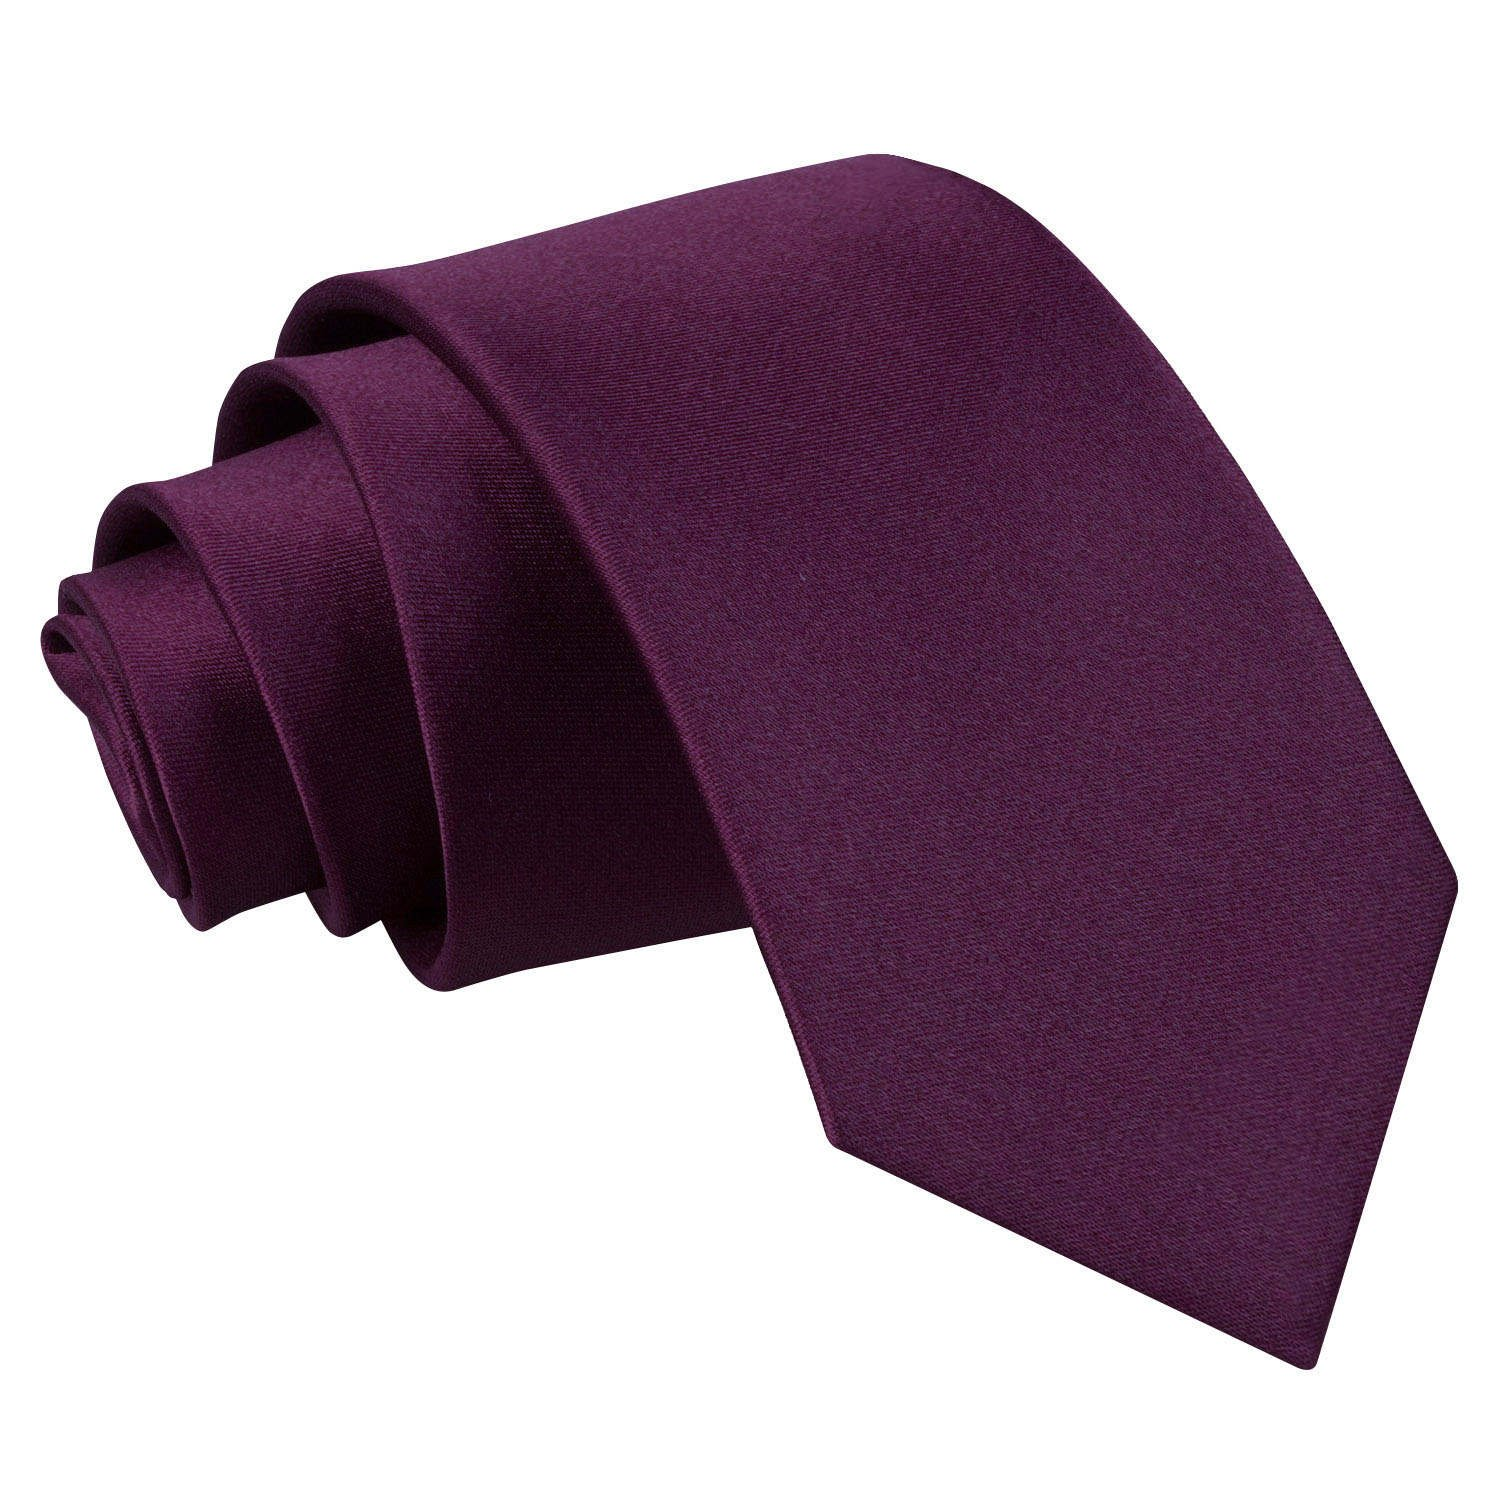 8+ Years Old with Free Matching Handkerchief DQT Boys Plain Satin Formal Wedding Neck Tie